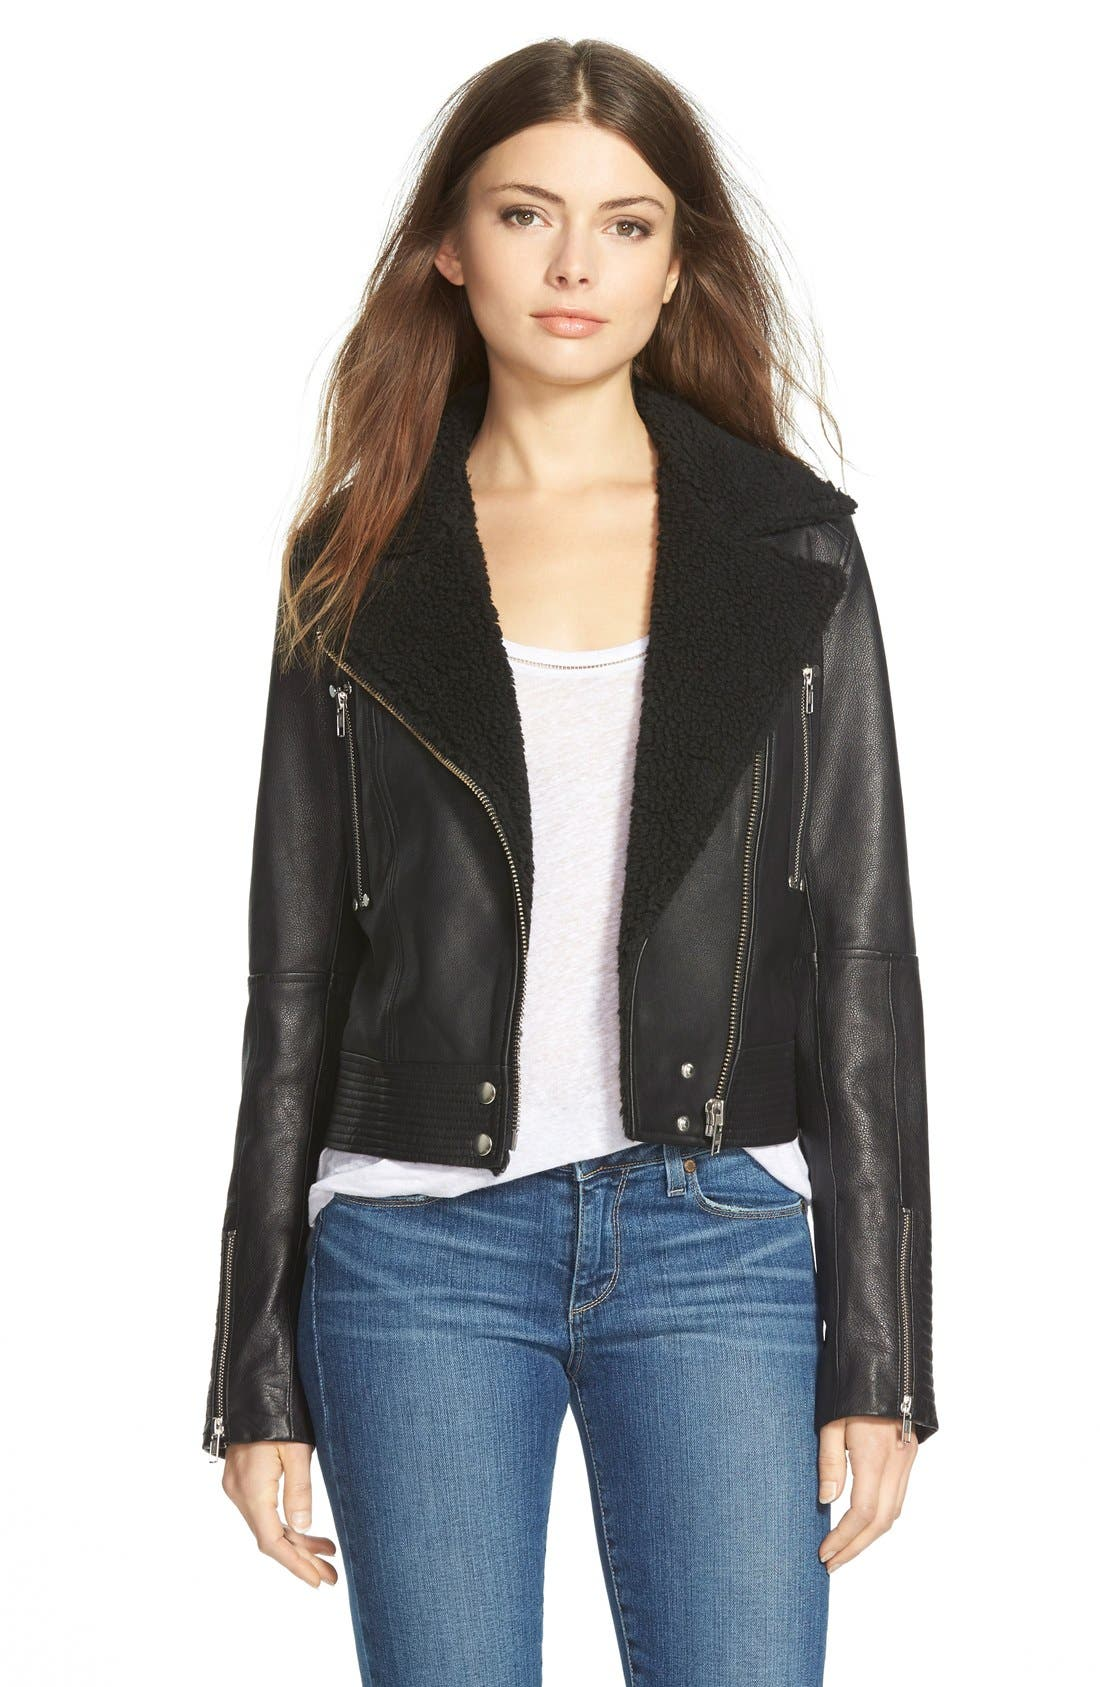 Denim 'Rooney' Leather Jacket with Faux Shearling Collar,                             Main thumbnail 1, color,                             Black